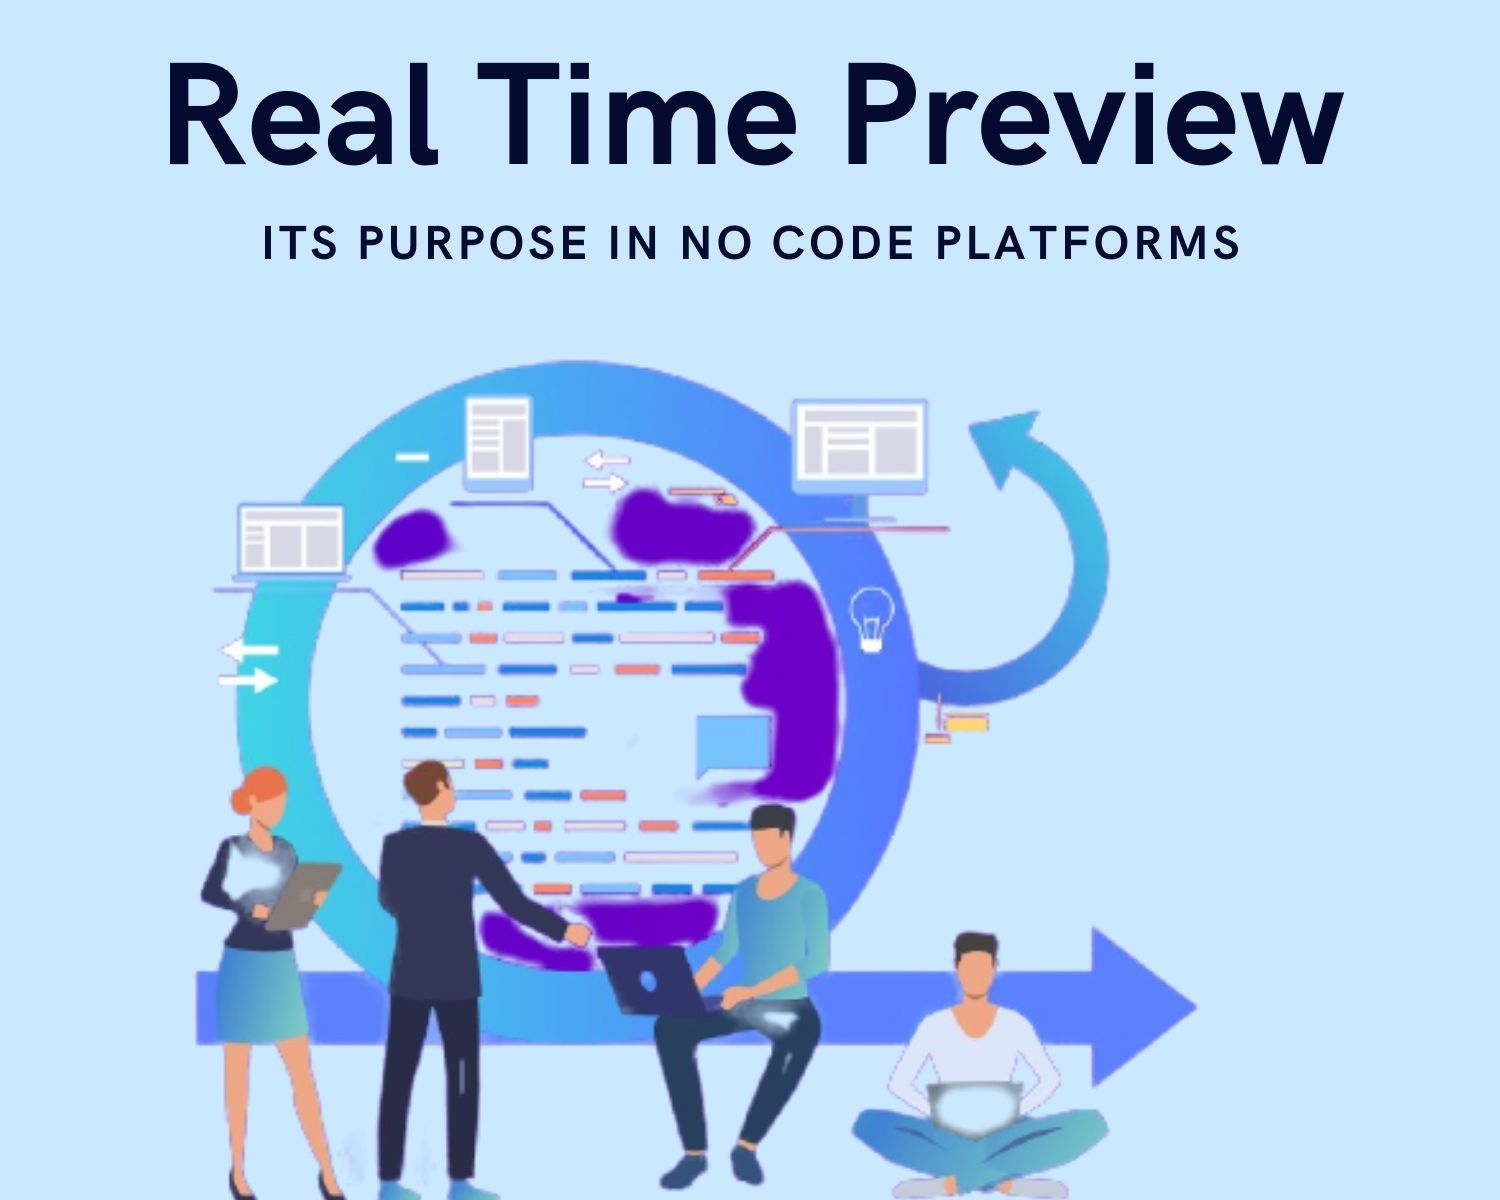 Real Time Preview in no code